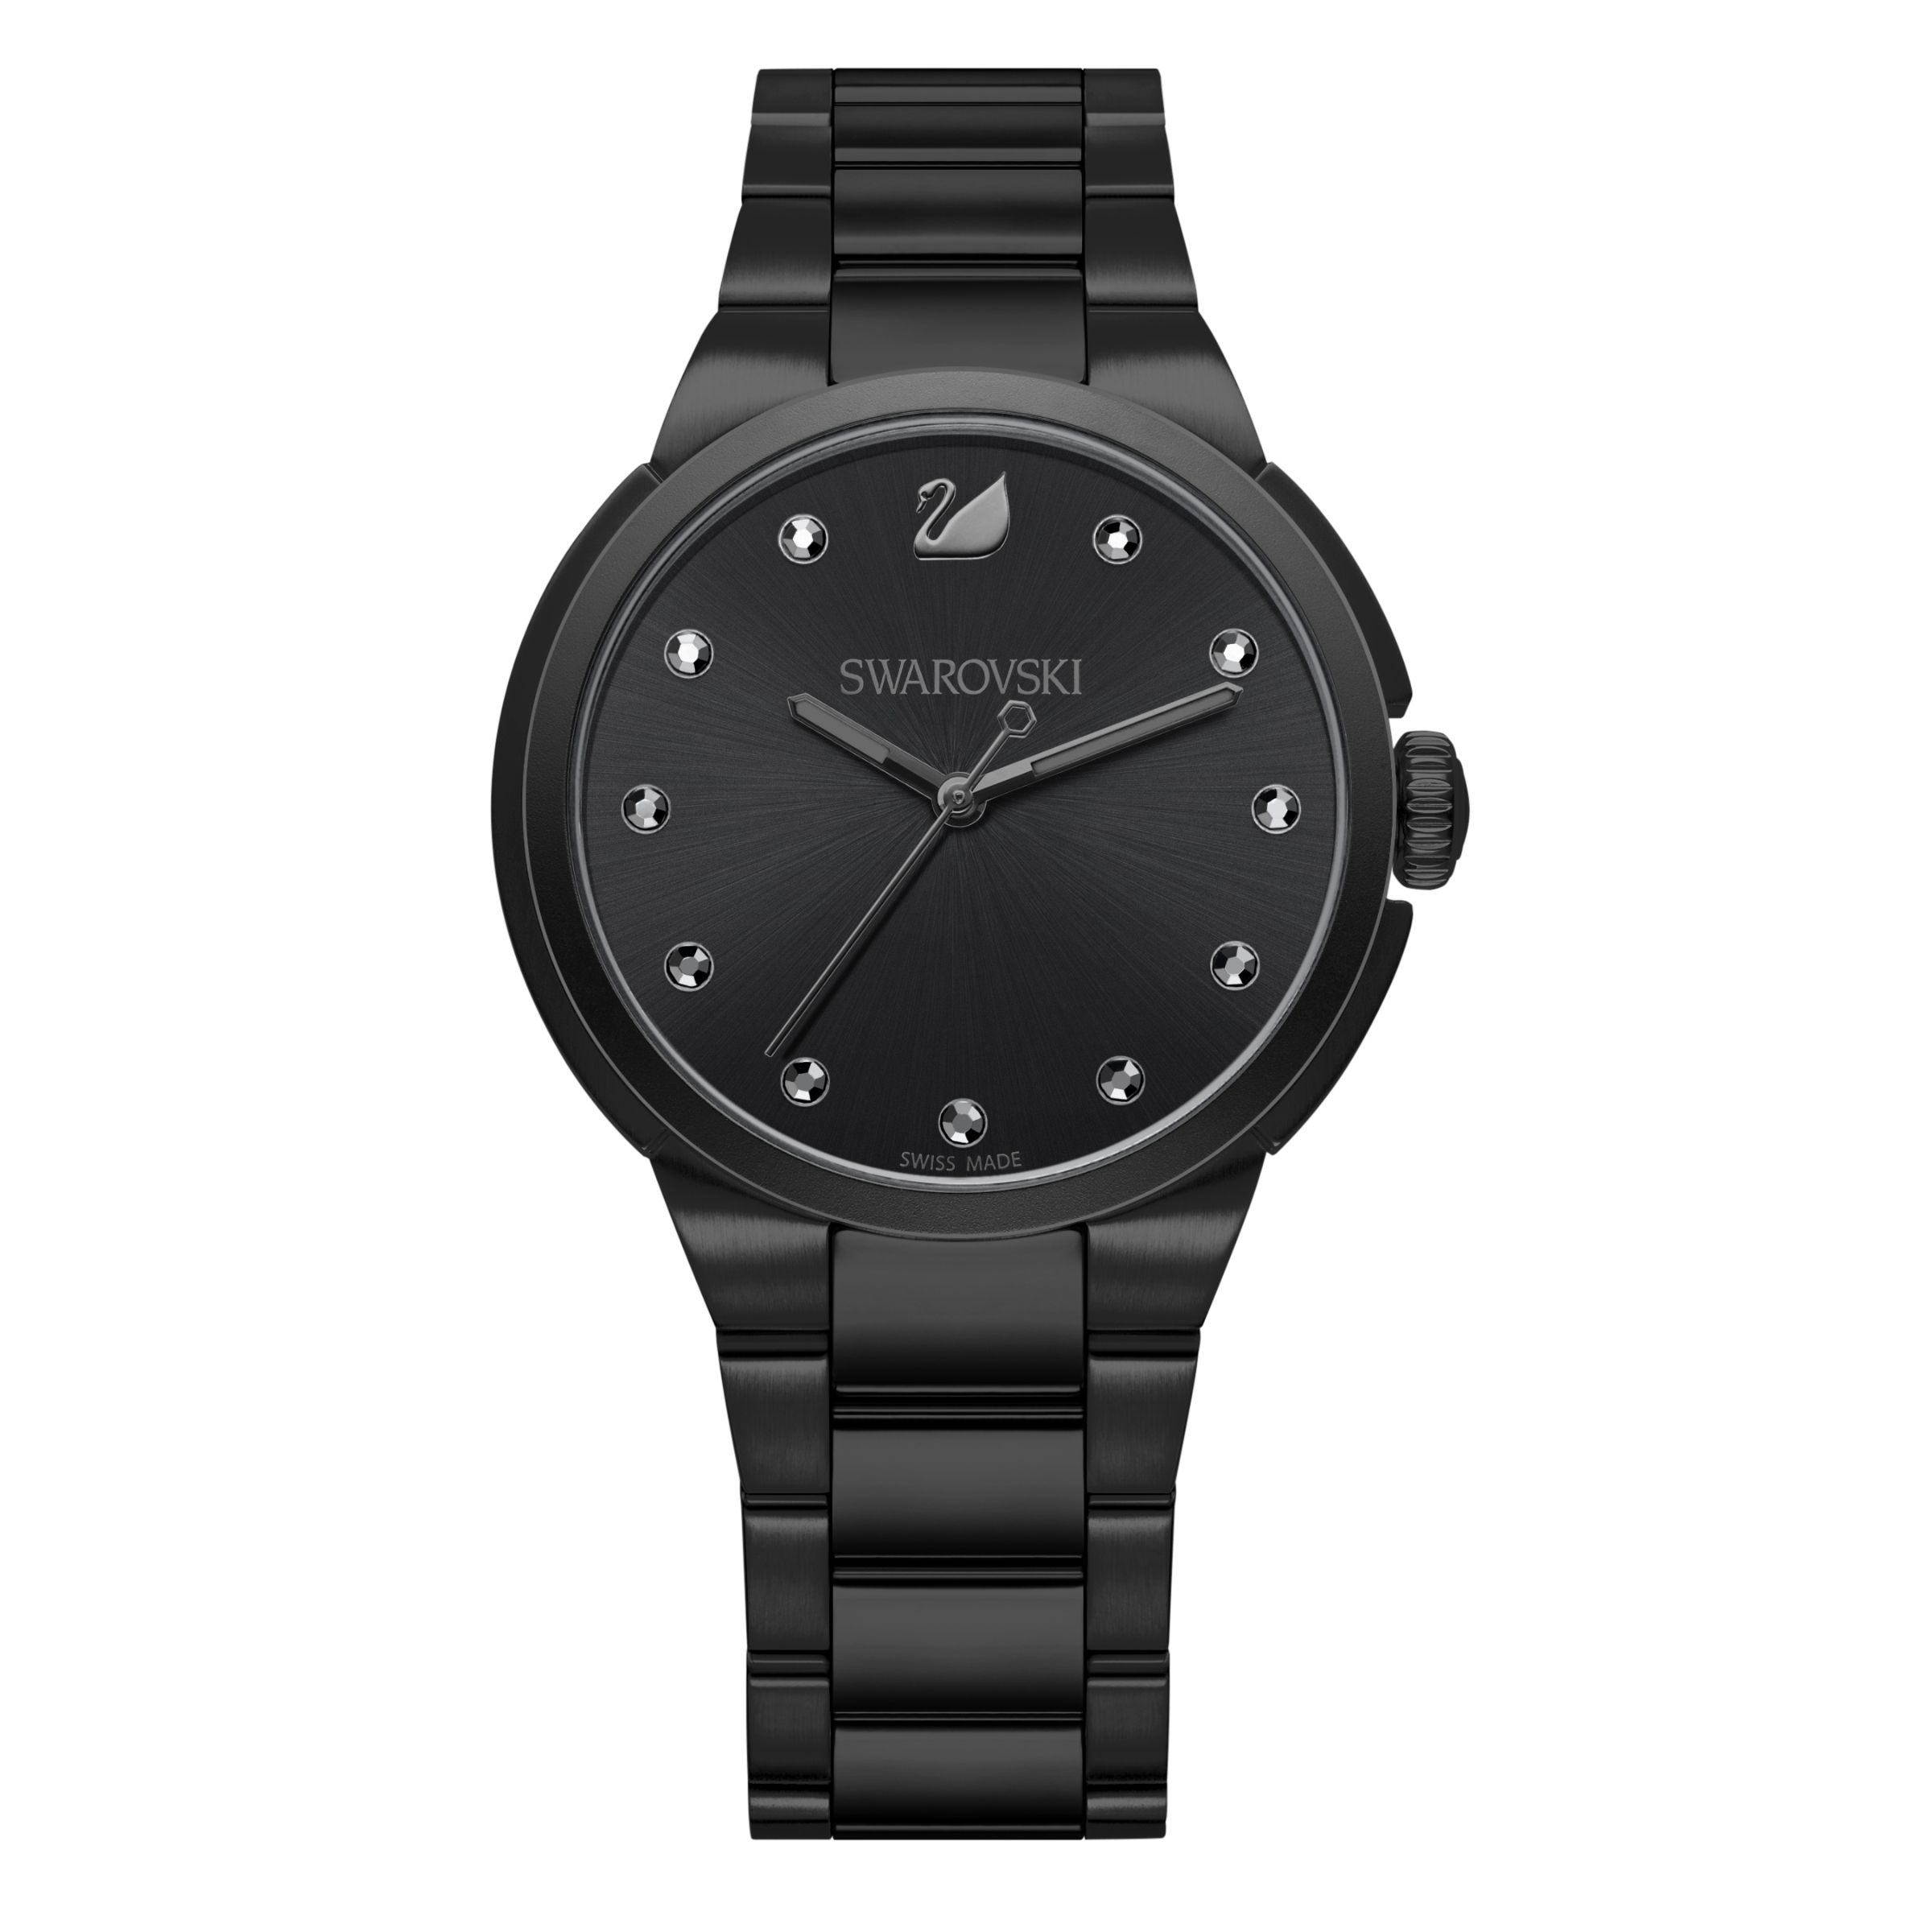 buy cheap swarovski watch compare women s watches prices for swarovski city watch black